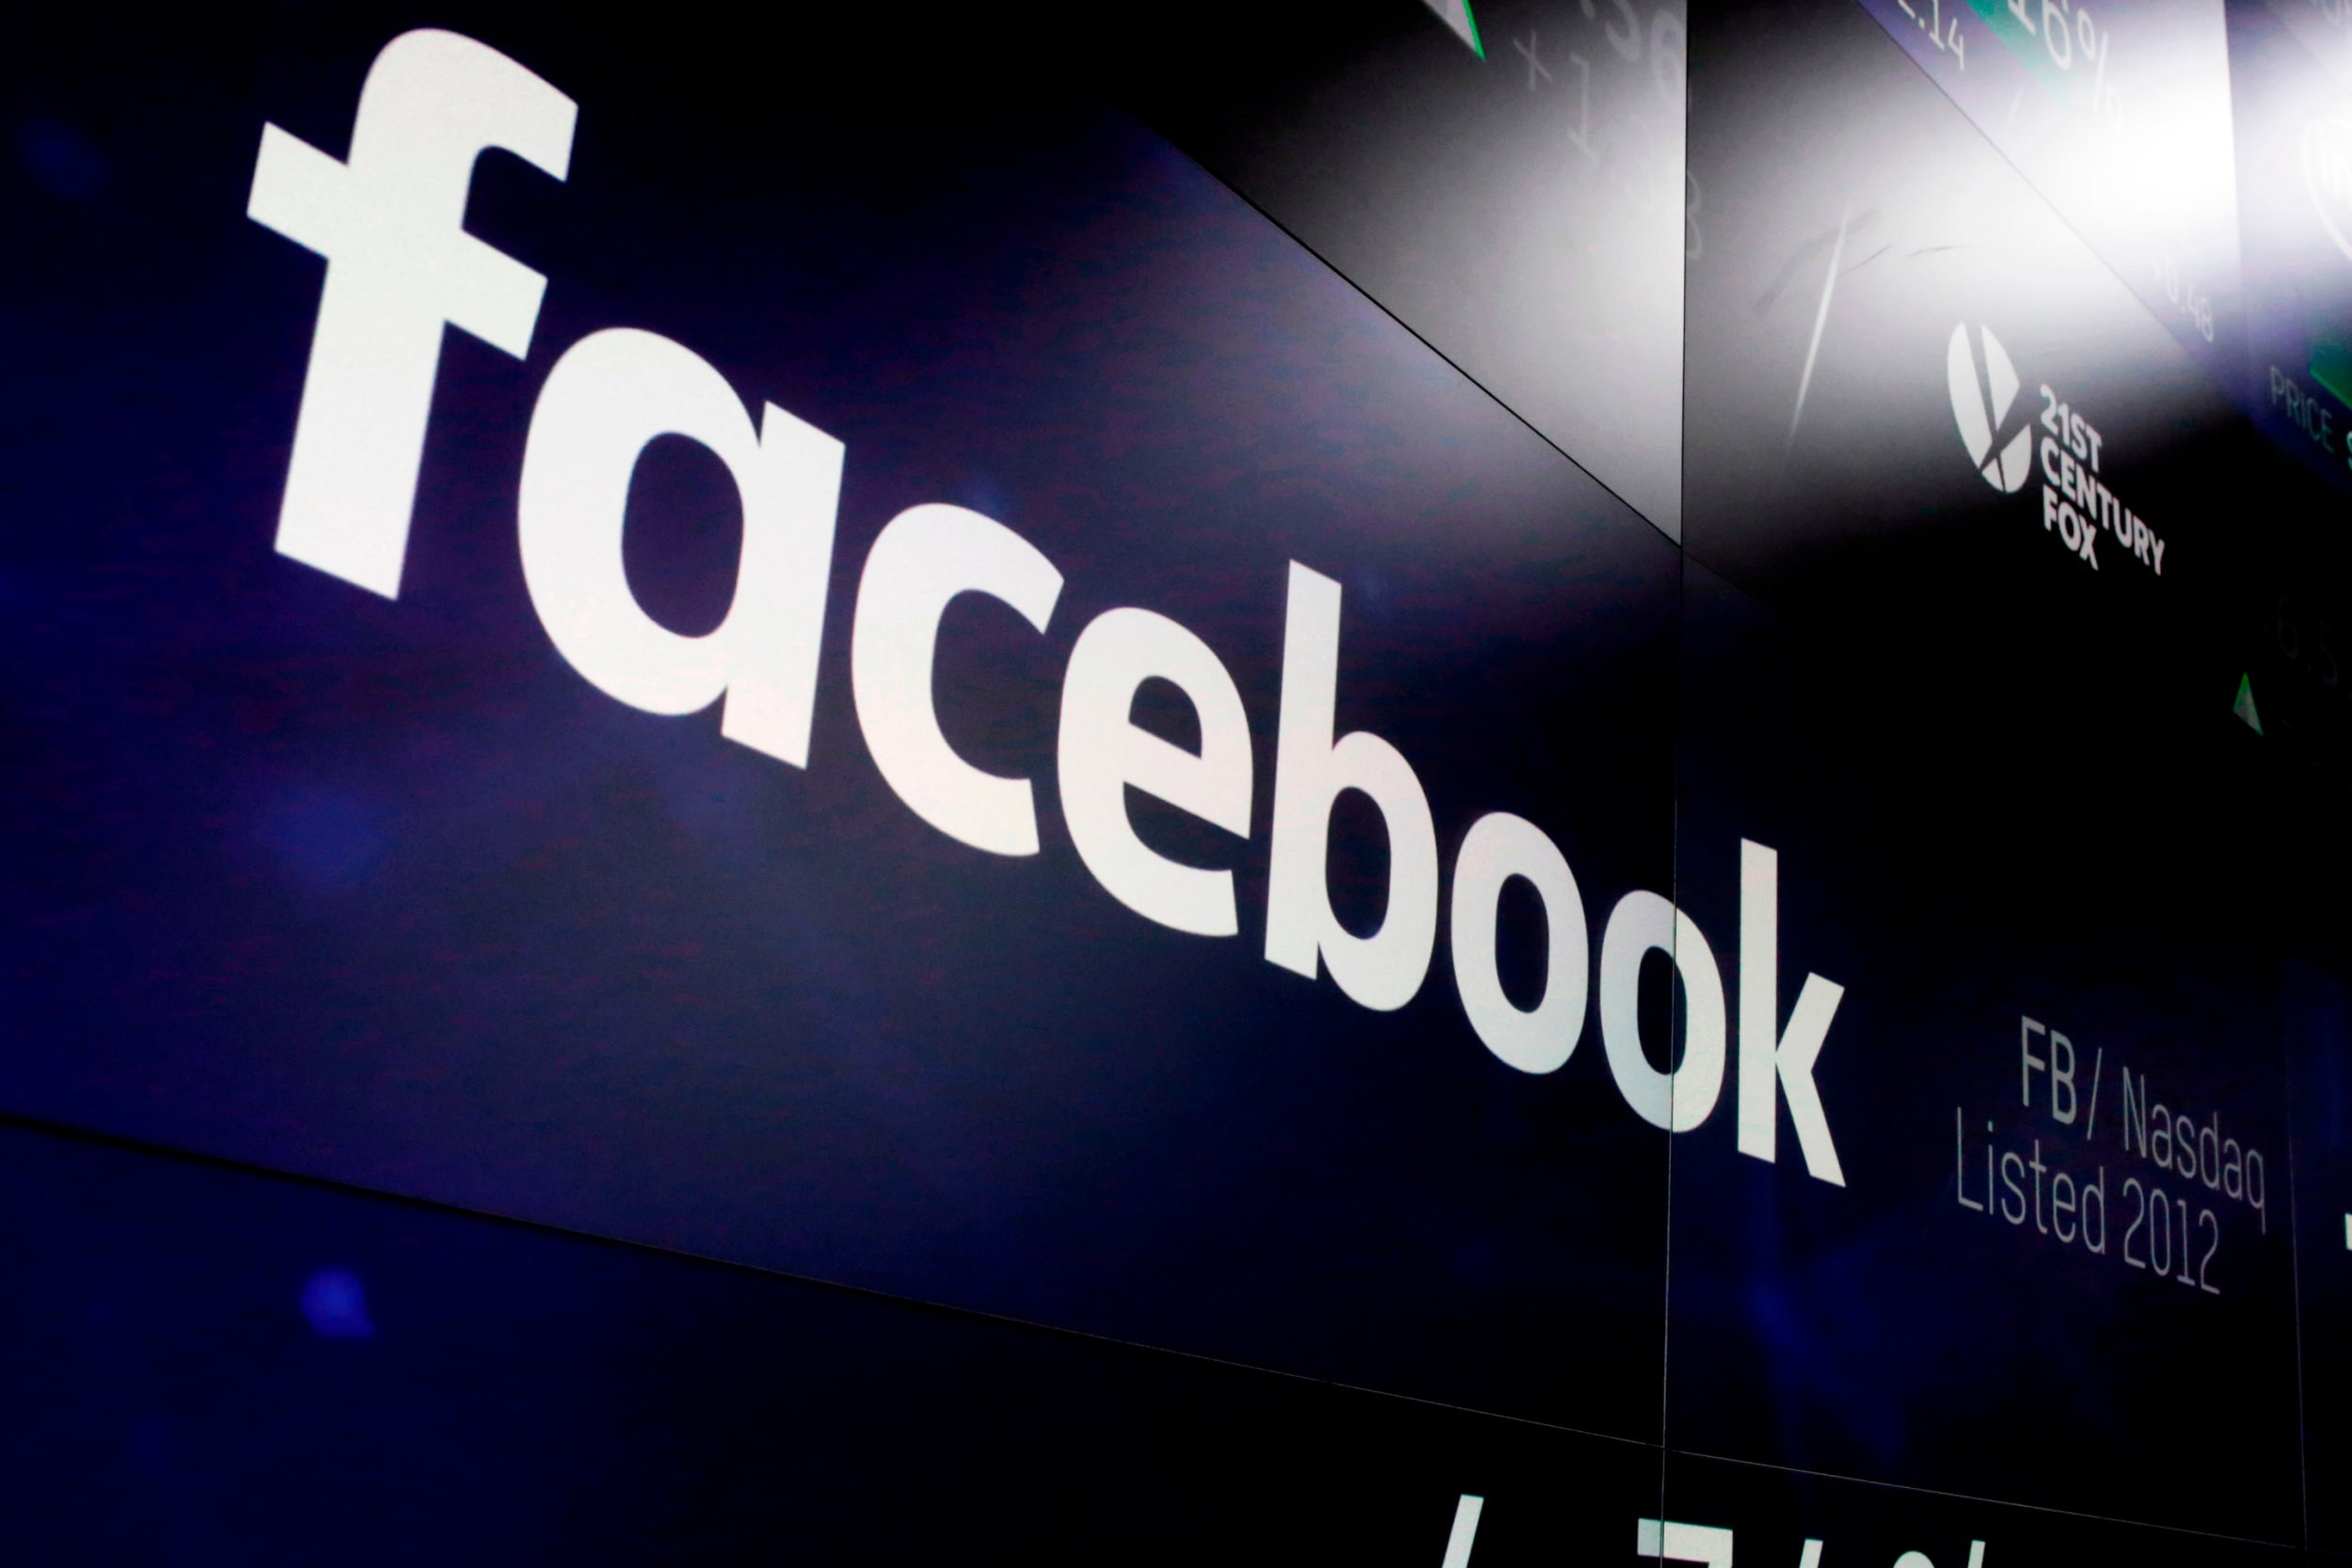 FILE - In this March 29, 2018, file photo, the logo for Facebook appears on screens at the Nasdaq MarketSite in New York's Times Square. Facebook is spending heavily to avoid a repeat of the Russian interference that played out on its service in 2016. Its adversaries are wily, more adept at camouflaging themselves and apparently aren???t always detectable by Facebook???s much-vaunted artificial intelligence systems. (AP Photo/Richard Drew, File)